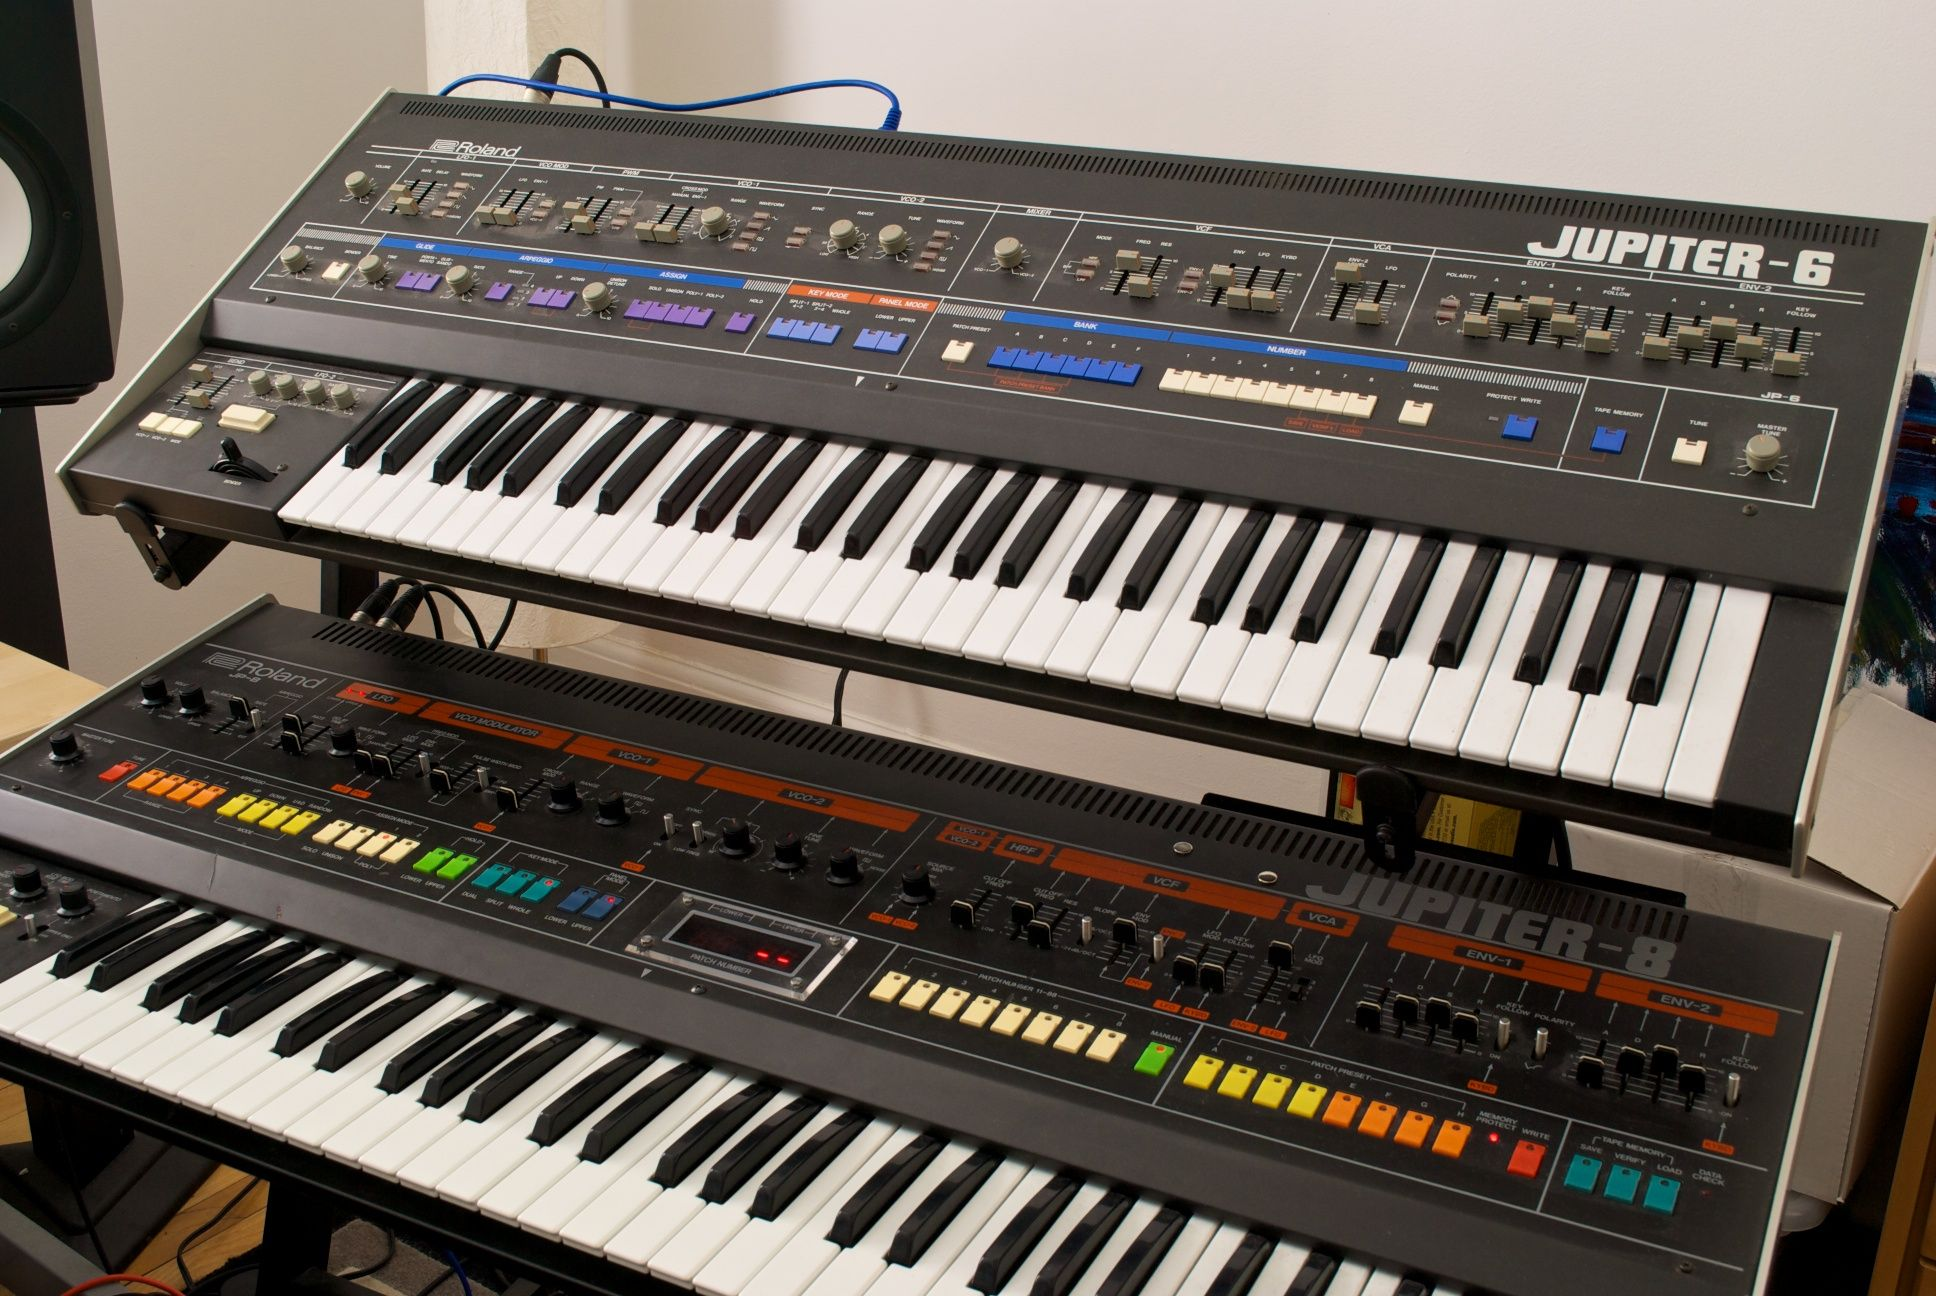 roland jp 6 jp 8 synths and keys in 2019 electronic music instruments roland keyboard. Black Bedroom Furniture Sets. Home Design Ideas